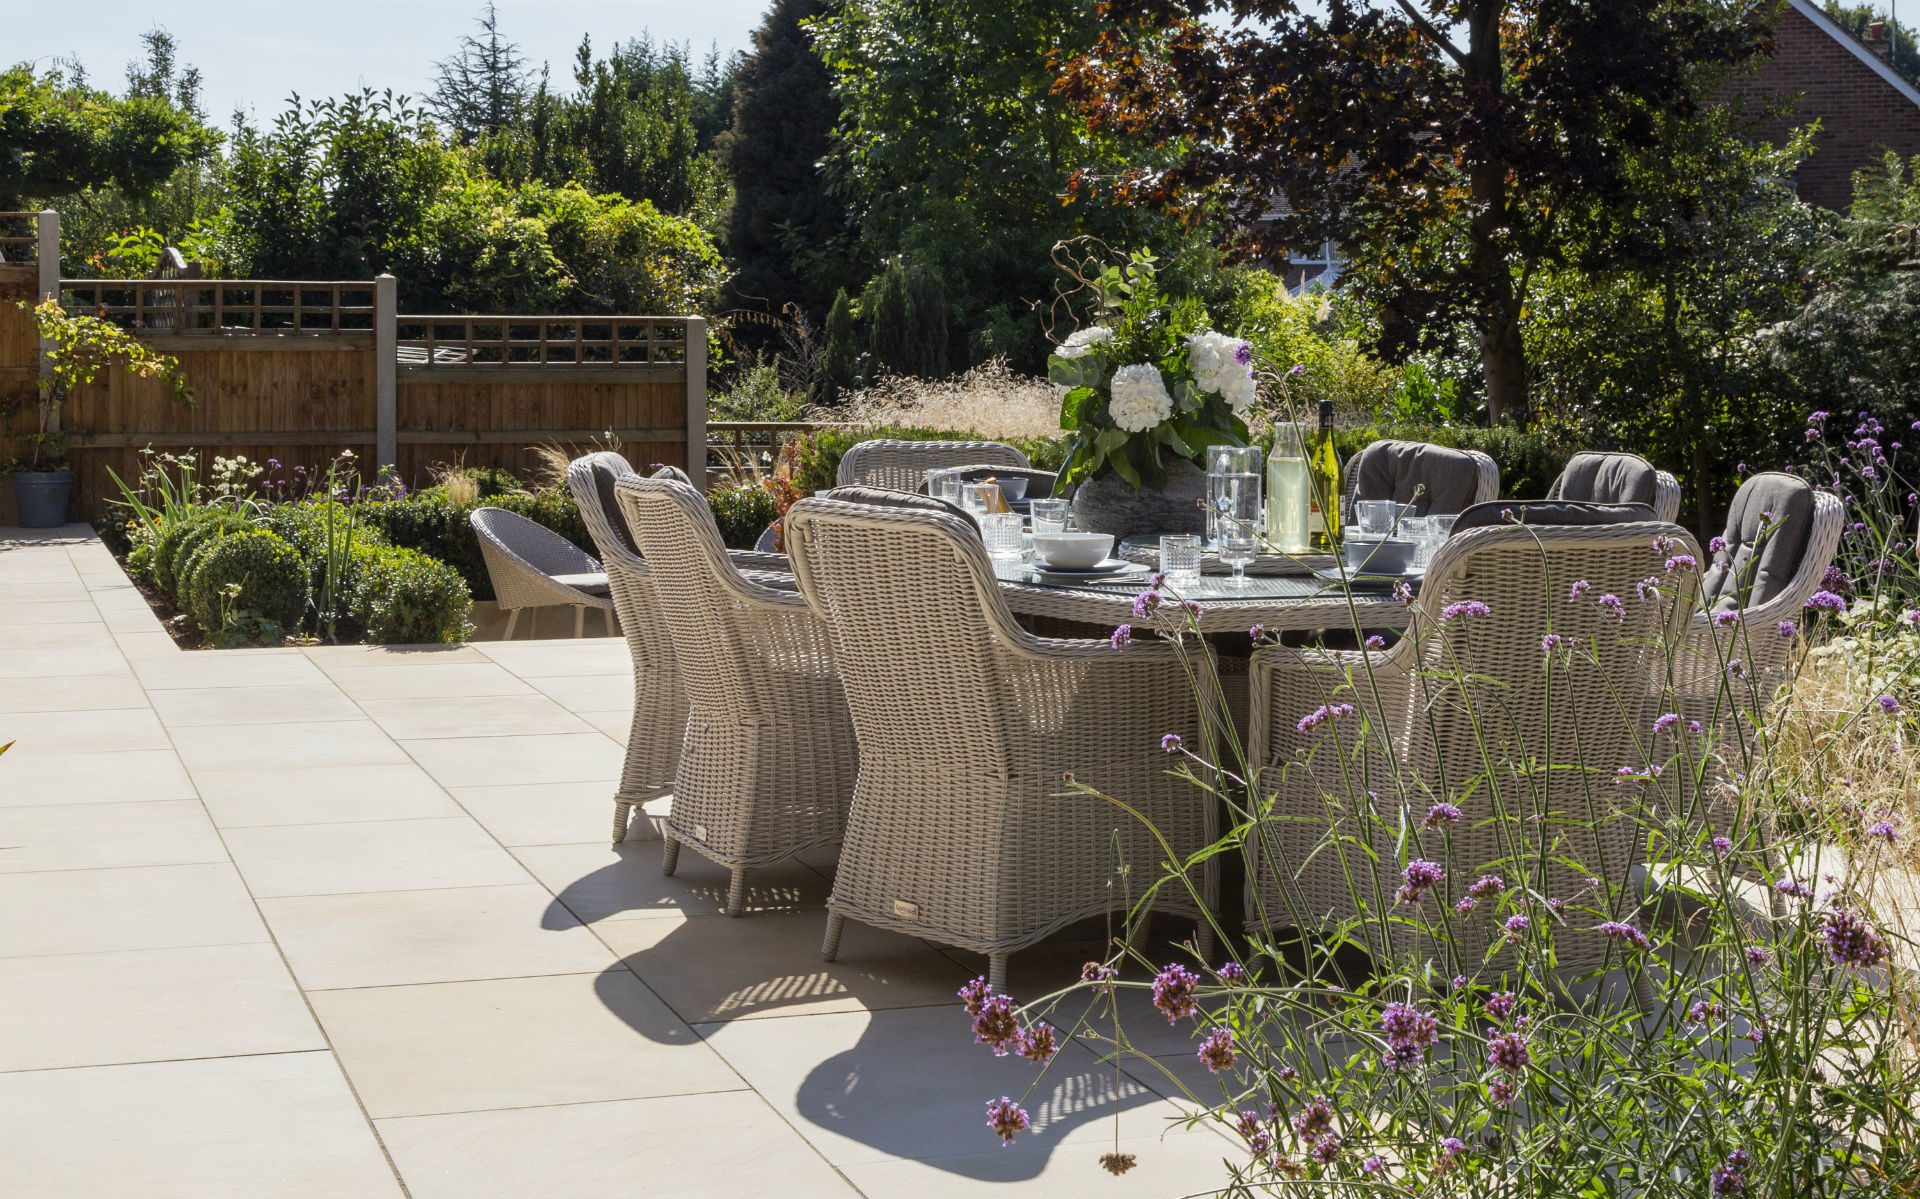 Portfolio Multi-level Landscape Garden Design and Build Ingatestone Essex Upper Patio